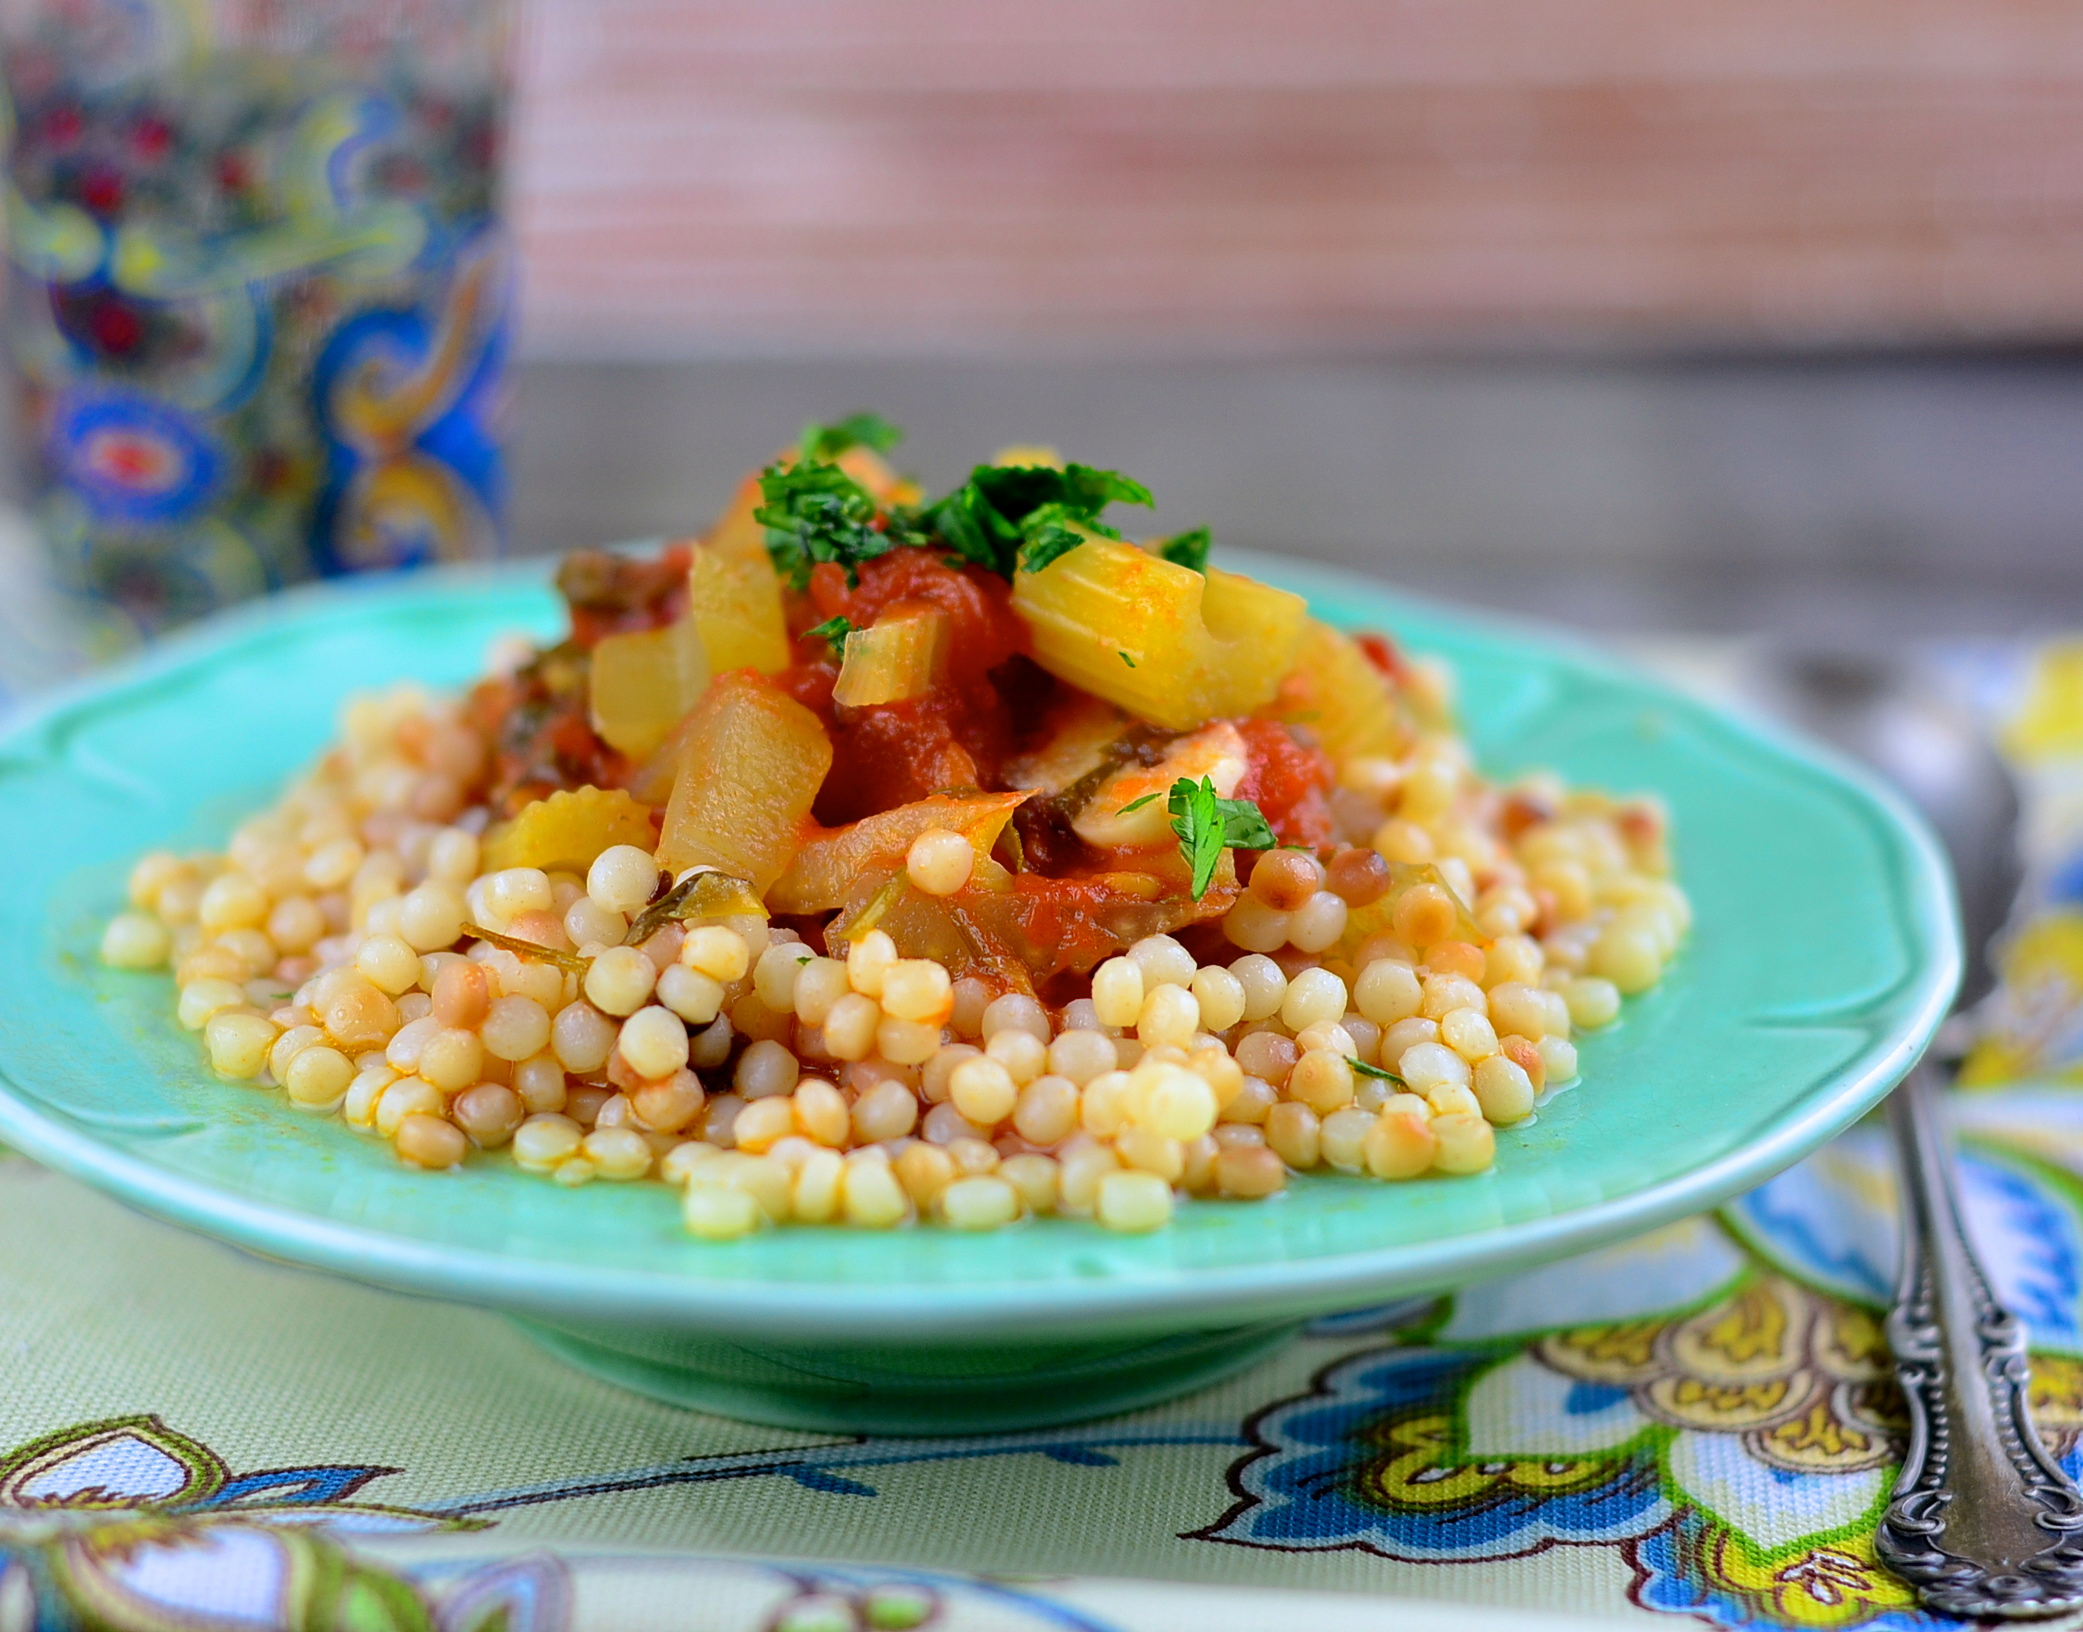 ... vegetables grilled eggplant and red pepper with israeli couscous